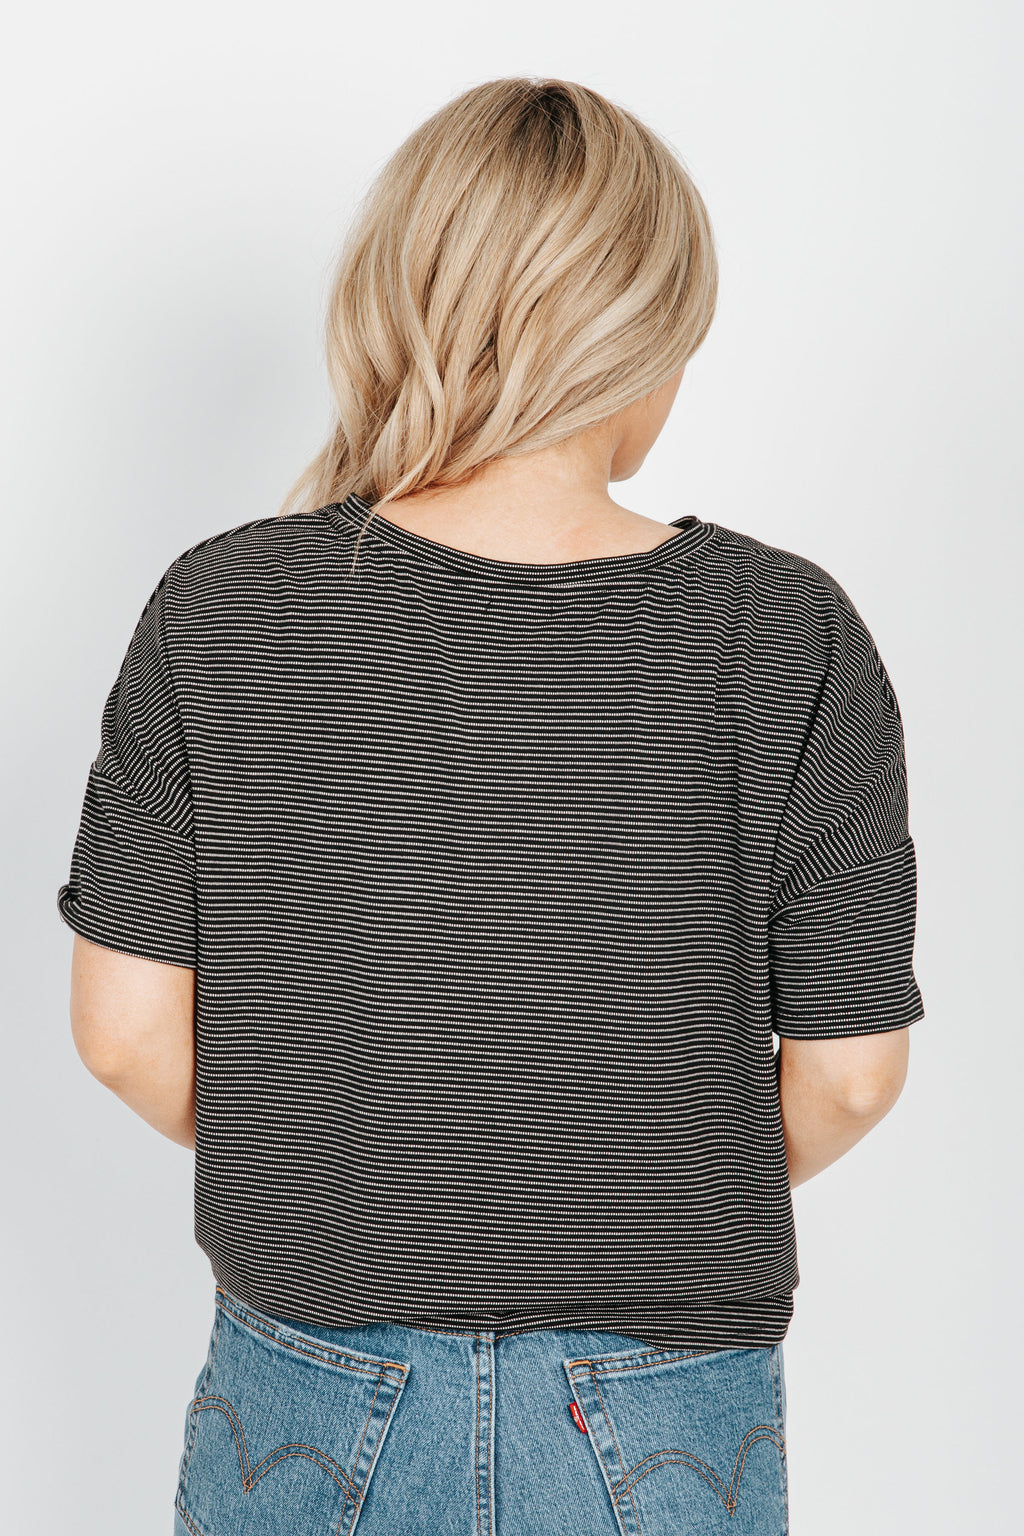 The Peyton Striped Tee in Black, studio shoot; back view